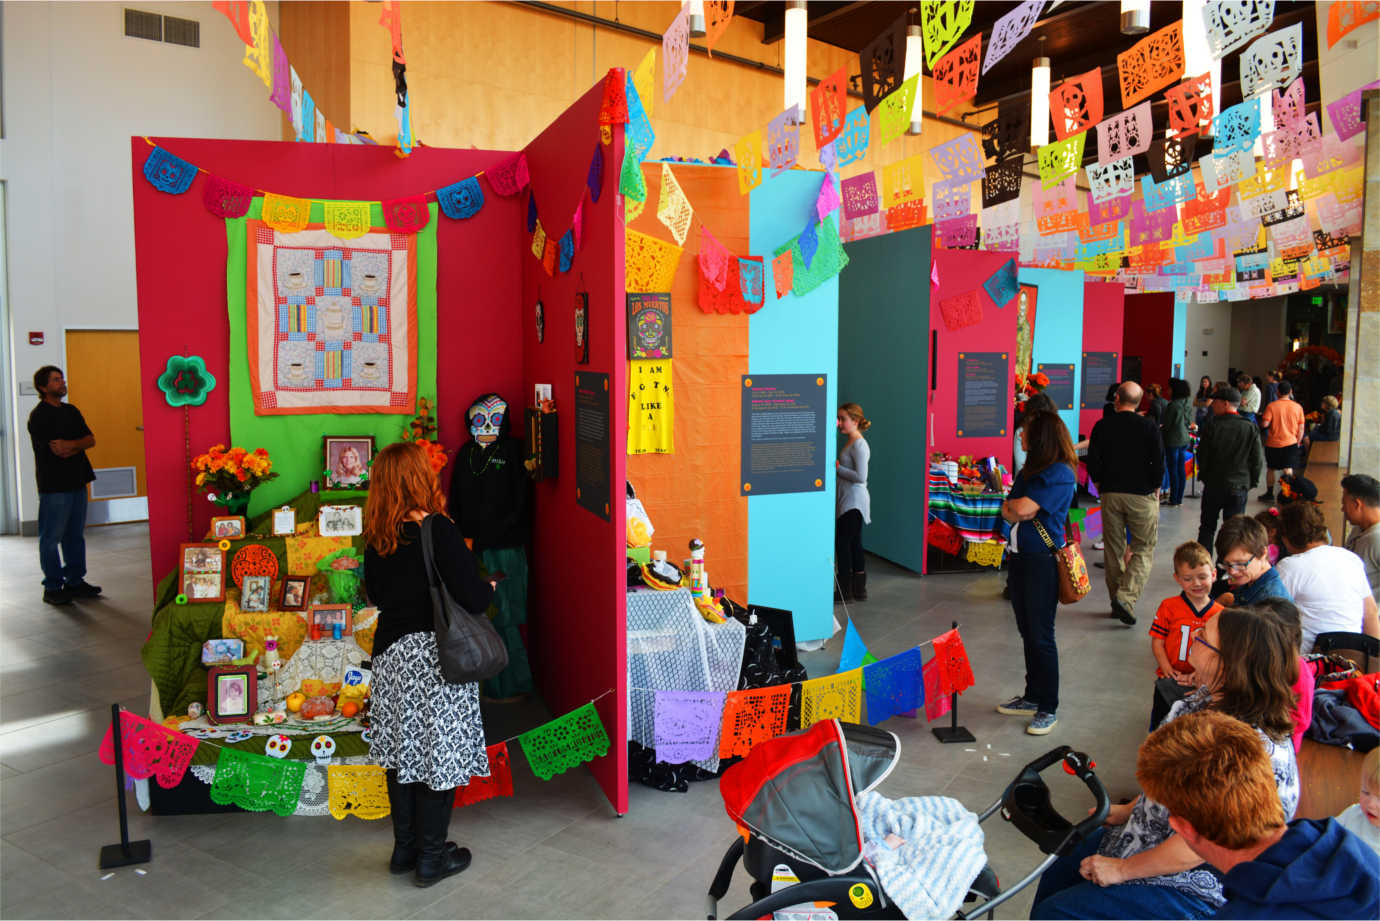 The Longmont Museum's *Dia de los Muertos* celebration draws 6,000 attendees from across Colorado and the surrounding states. Image courtesy of the Longmont Museum.